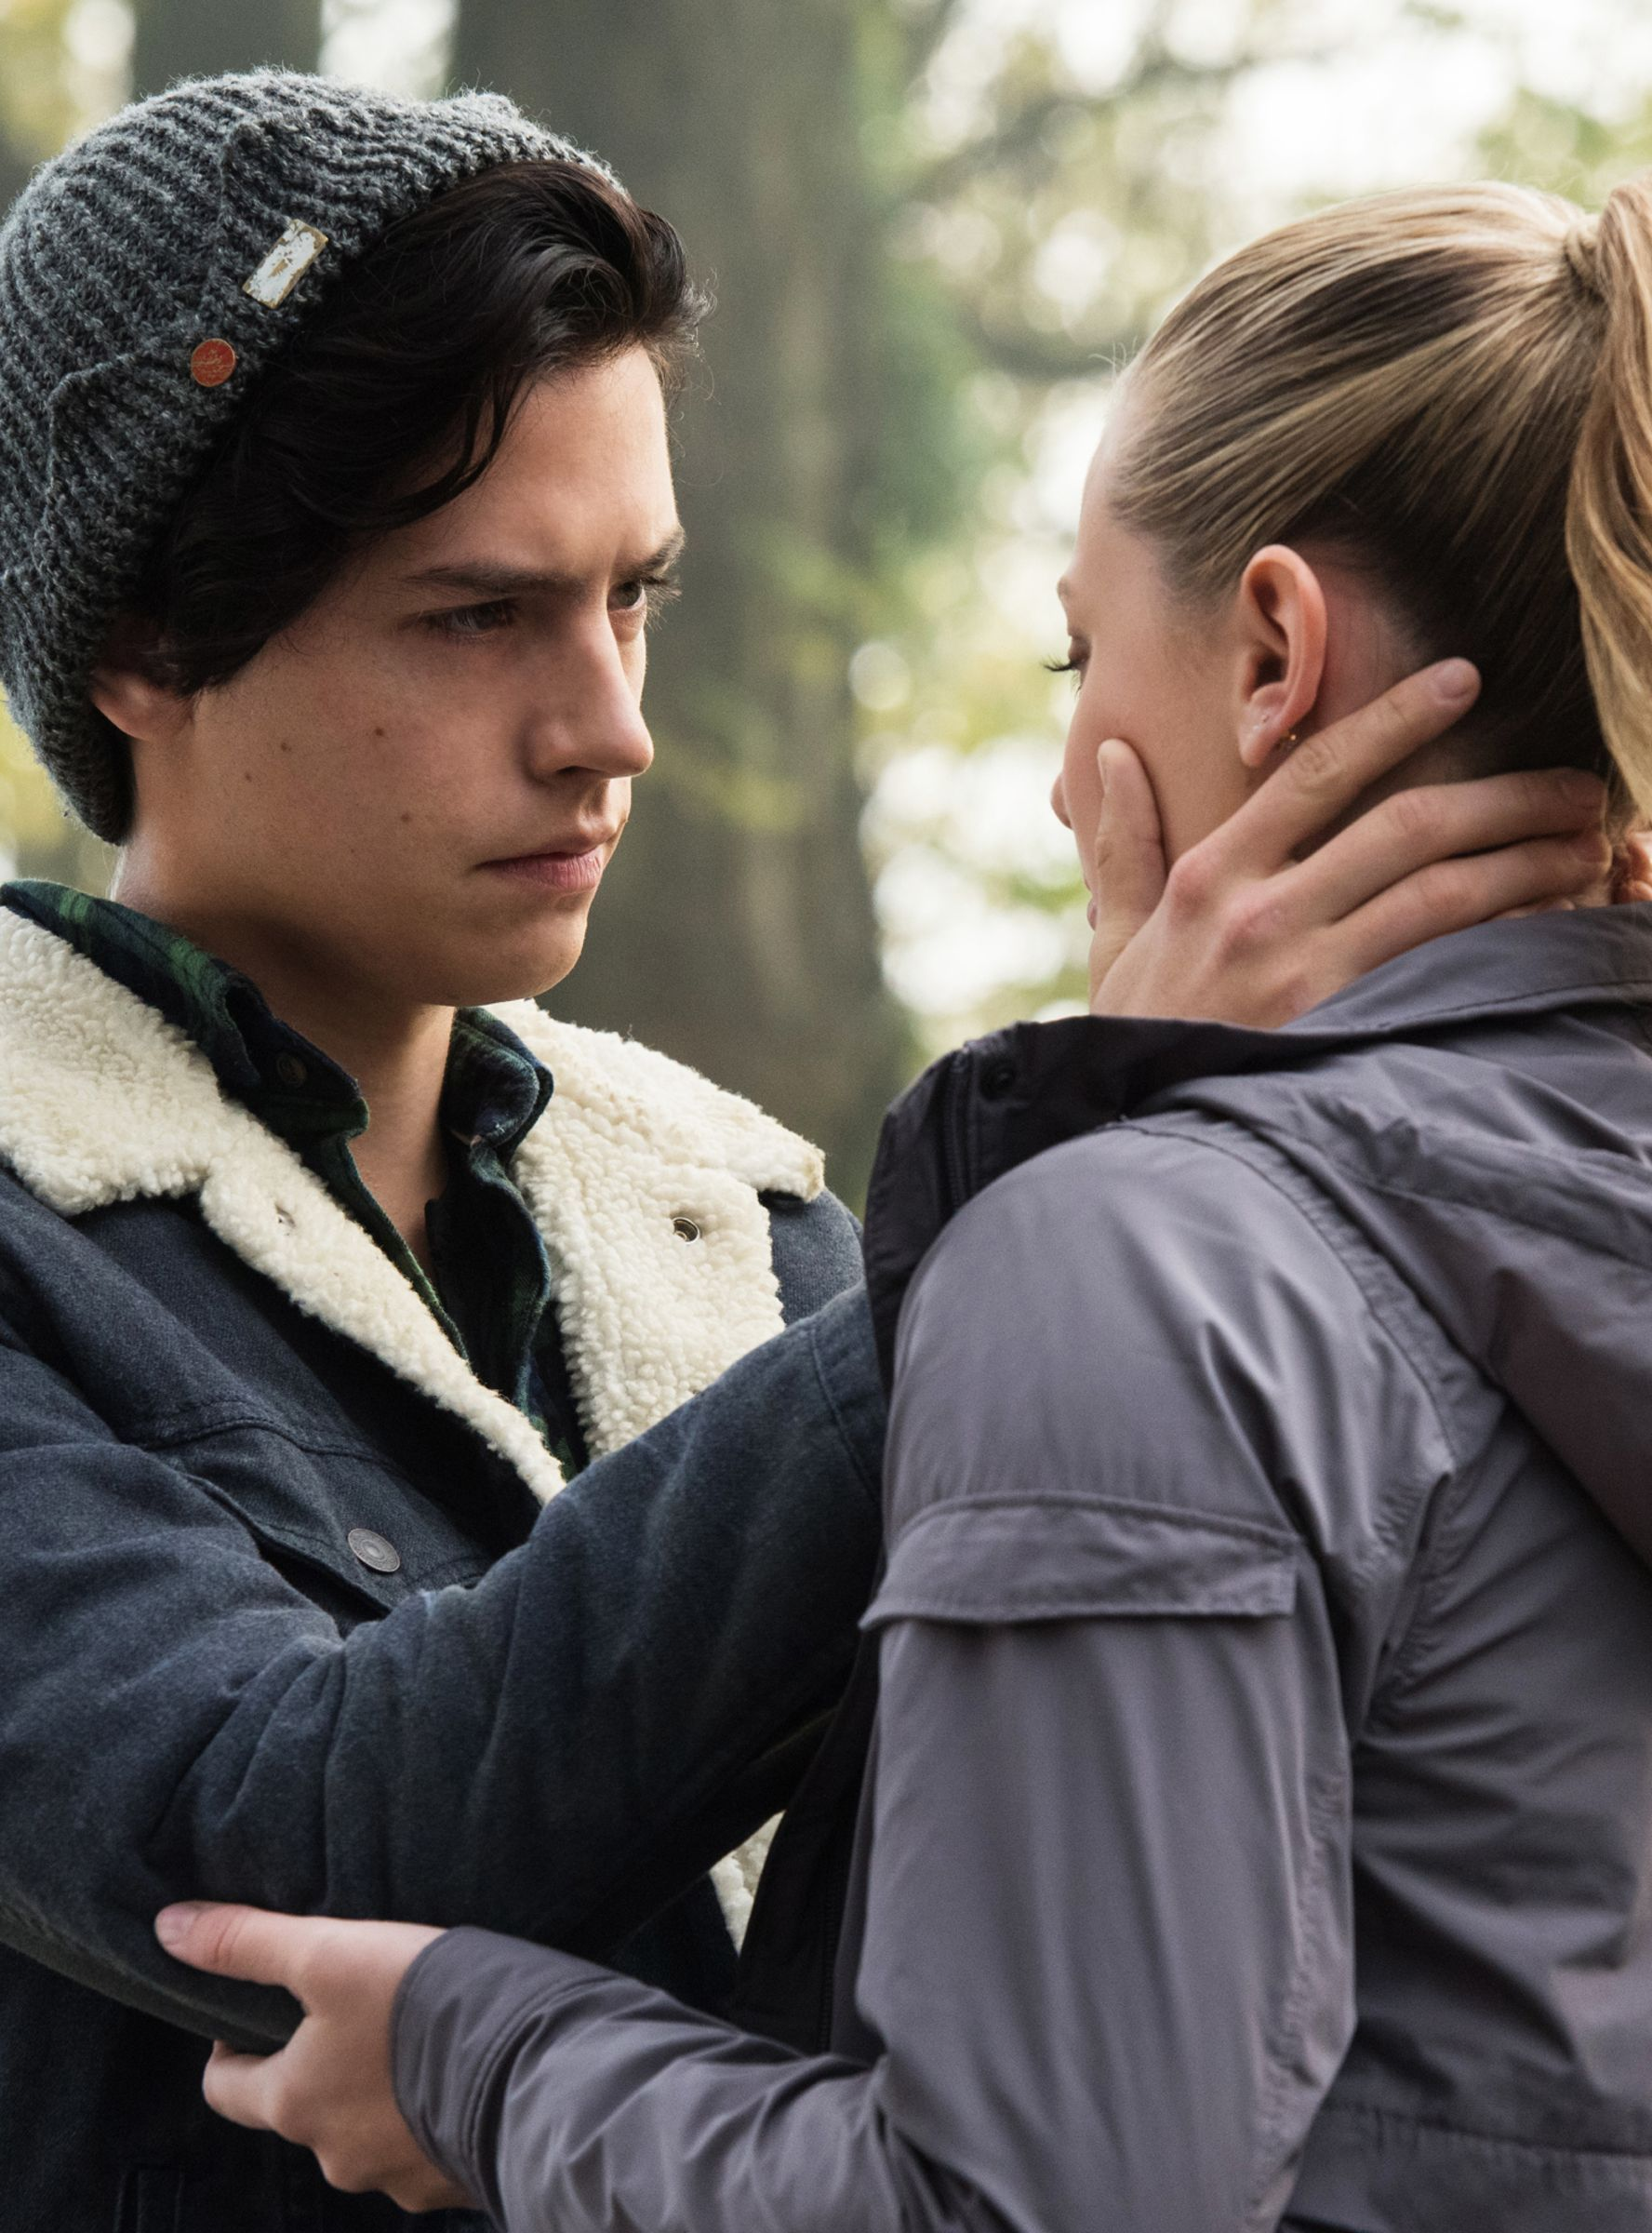 Cole Sprouse Lili Reinhart S Halloween Costume Was Extremely Couple Y Riverdale Riverdale Funny Riverdale Betty And Jughead